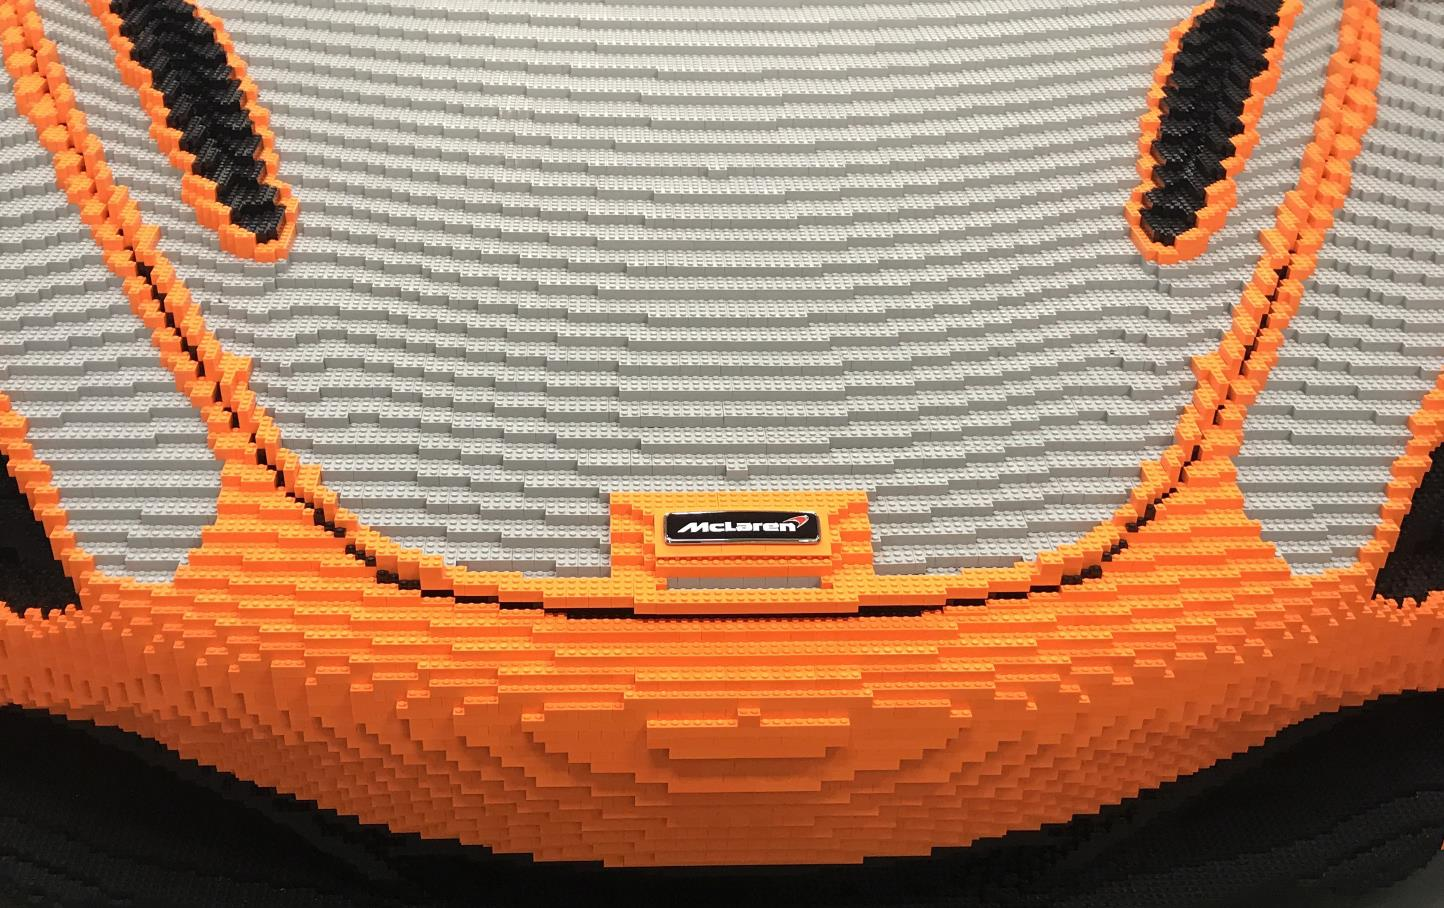 Full-Size 'Some Assembly Required' Lego McLaren 720S Arrives At Goodwood